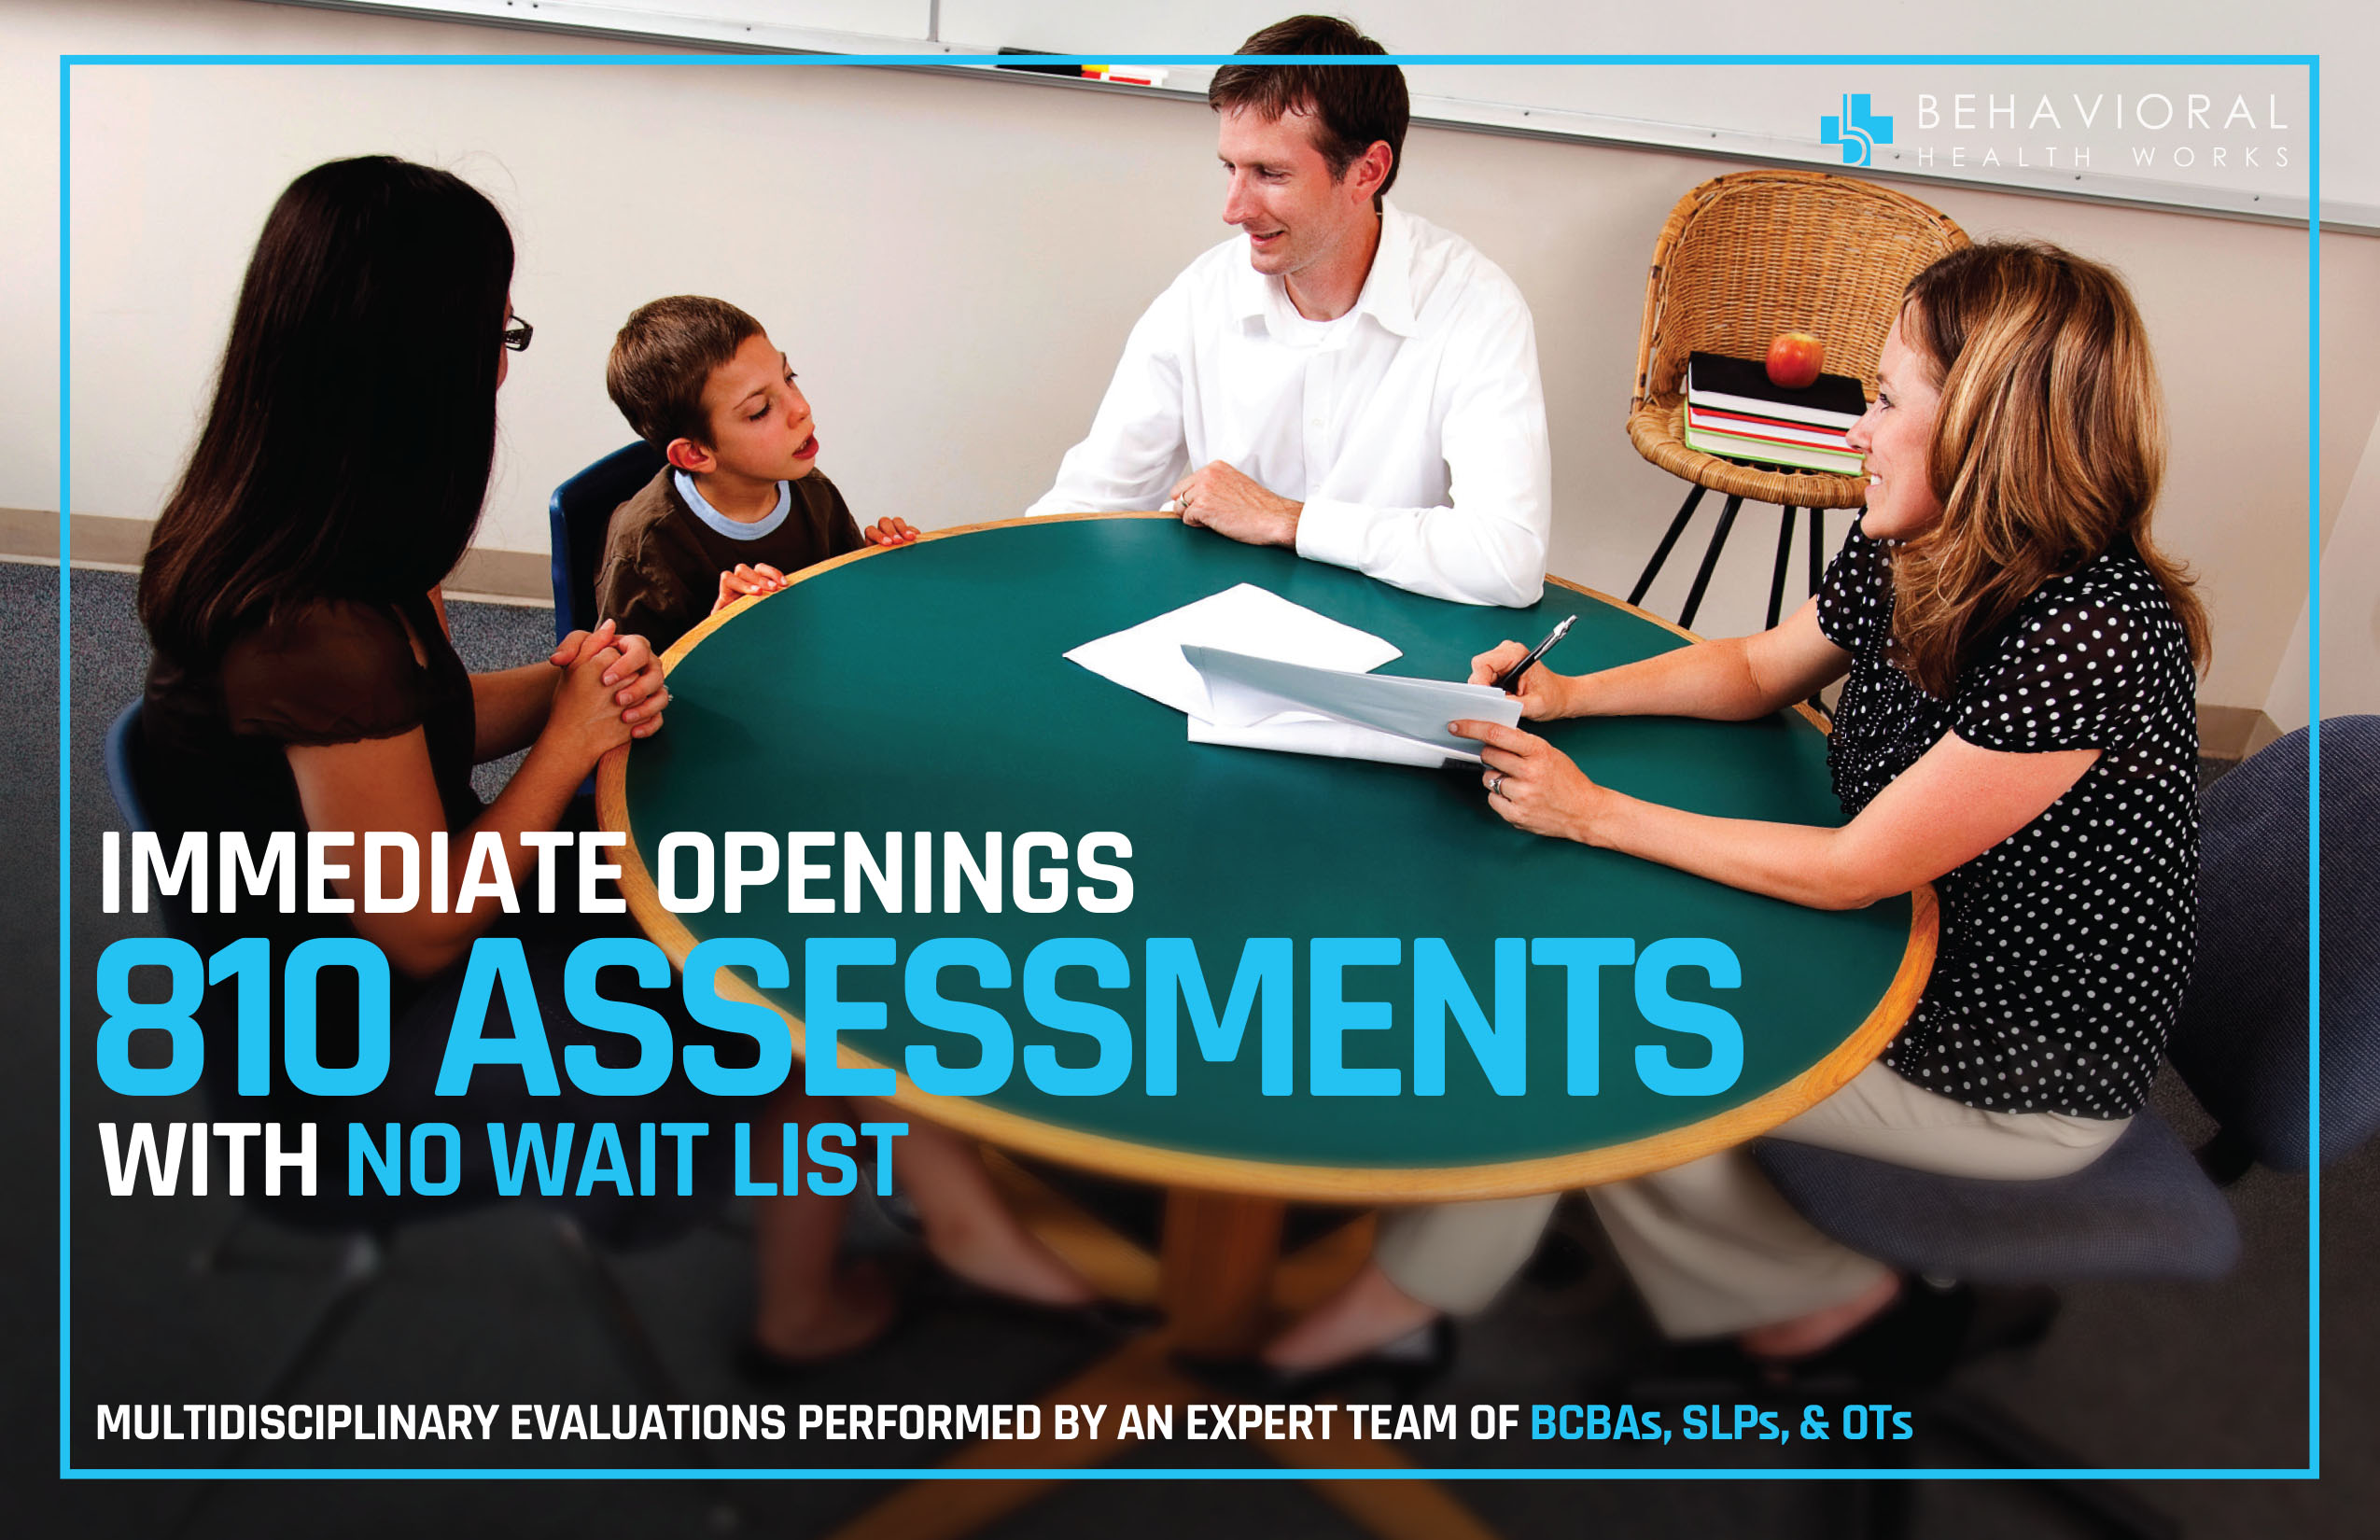 810 Assessments with immediate openings